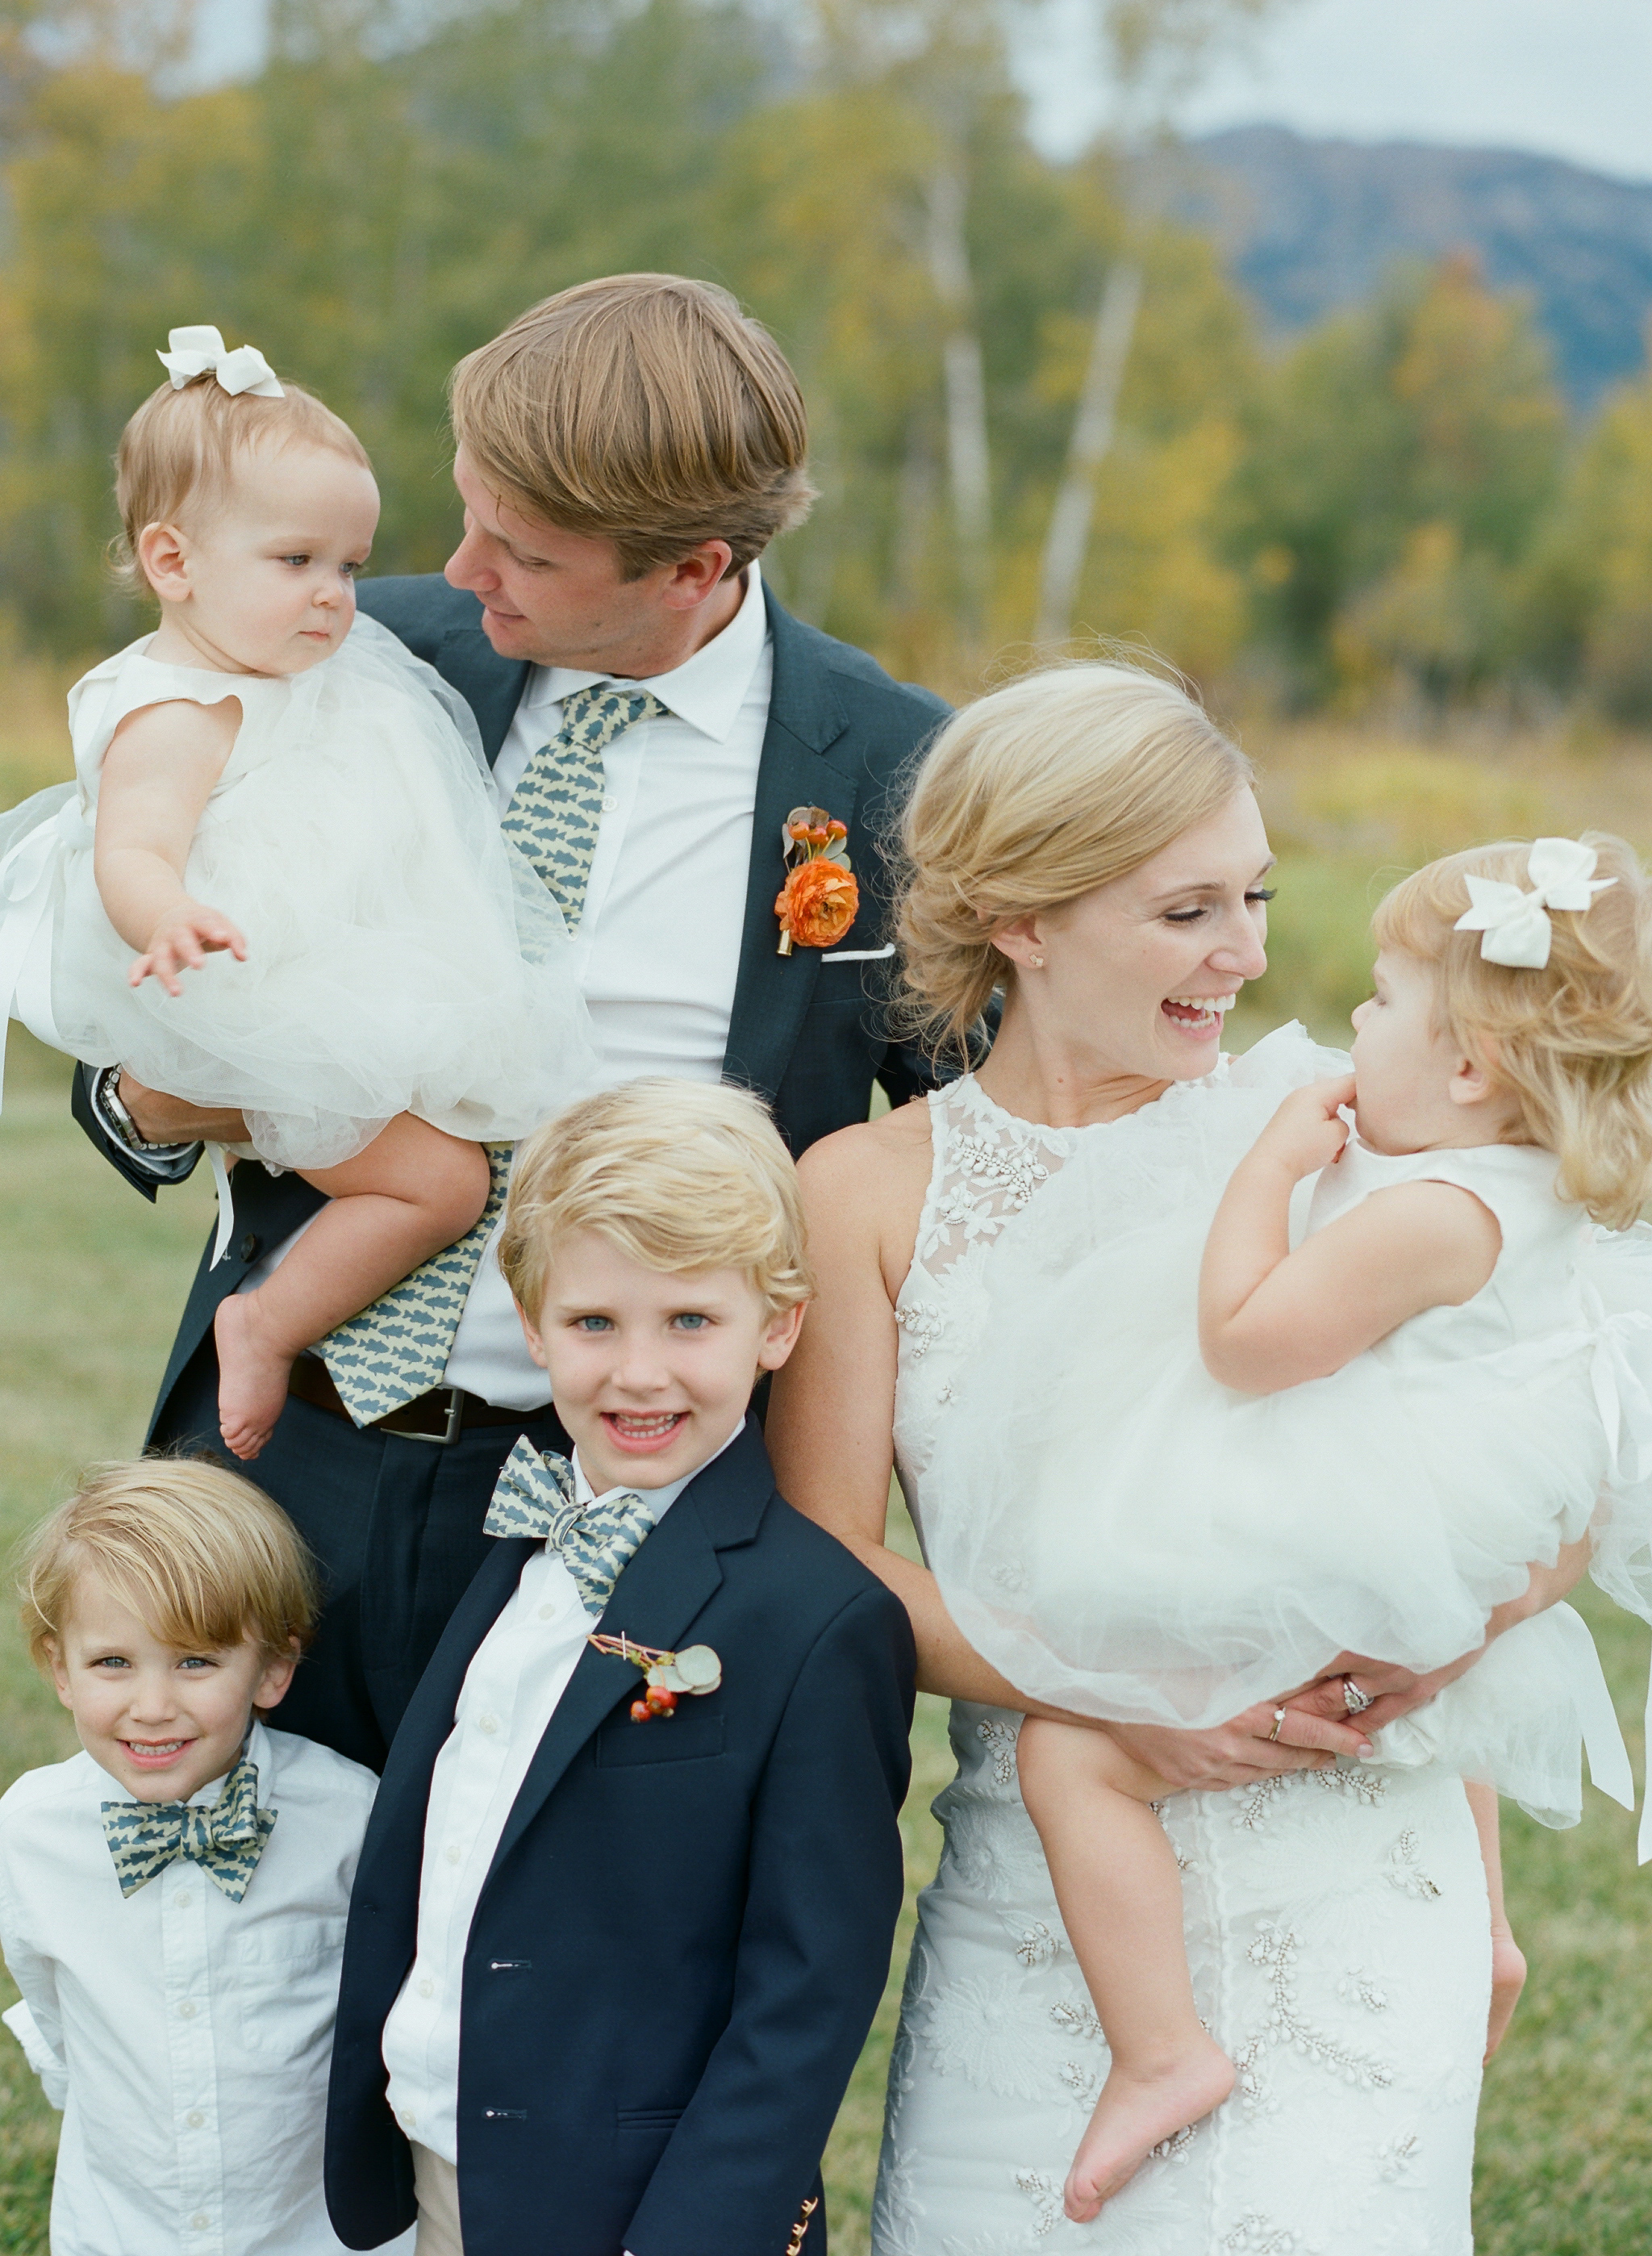 The Etiquette of Having Children at Your Wedding